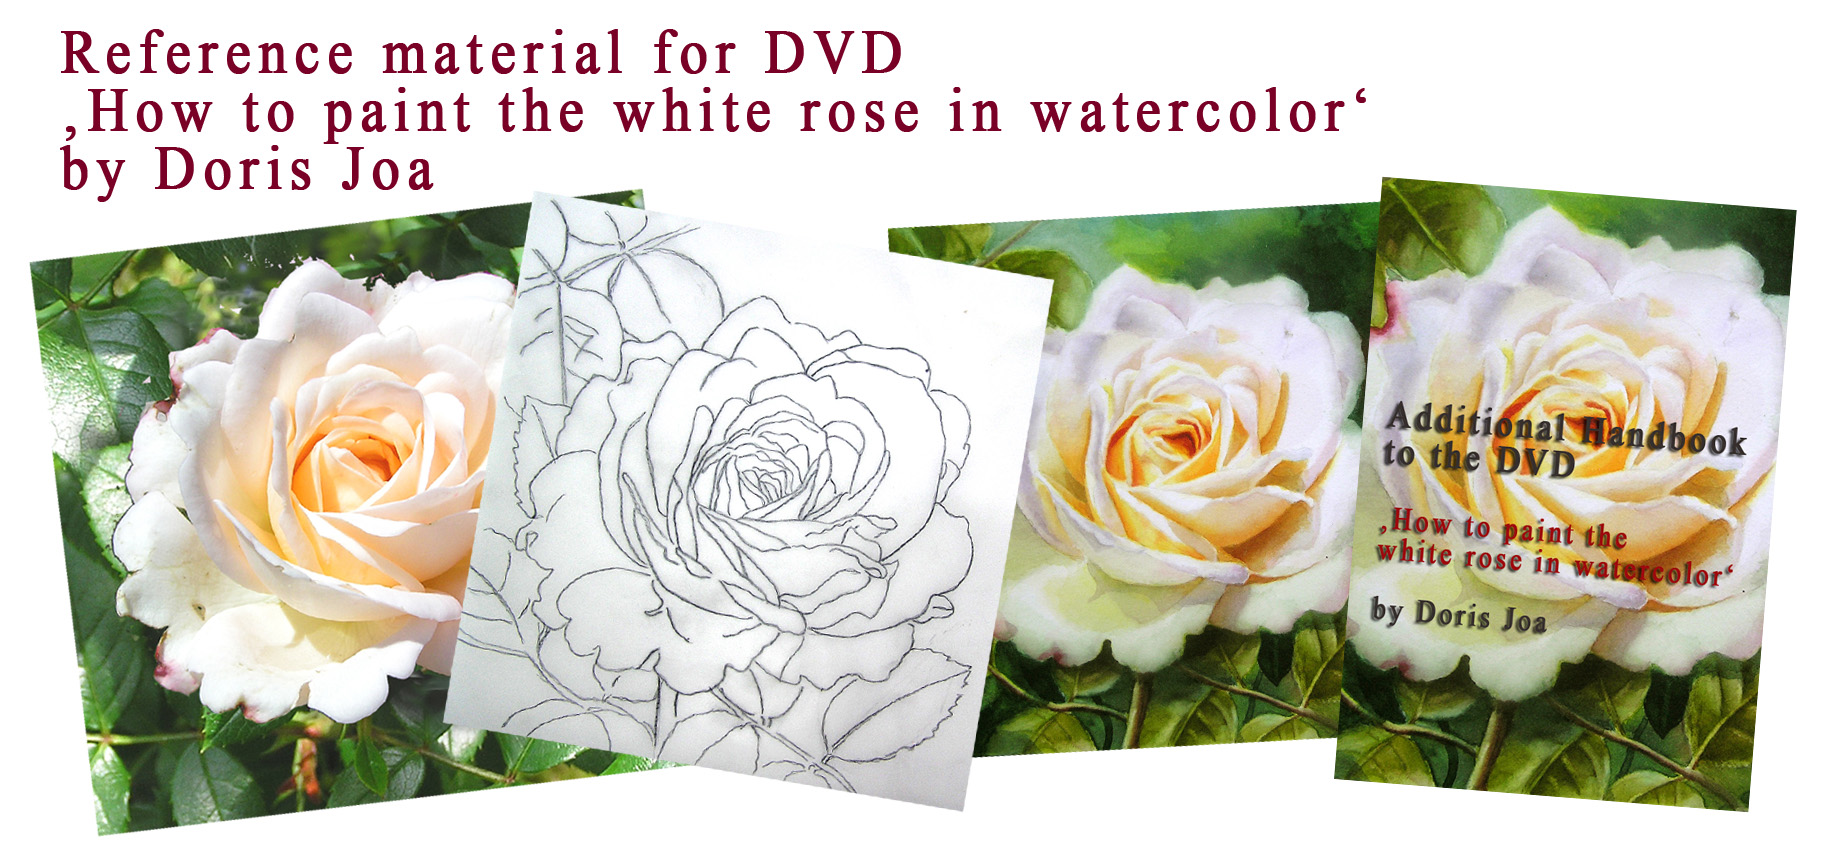 Reference material for Doris Joa's Watercolor DVD 'How to paint the white rose in watercolor'